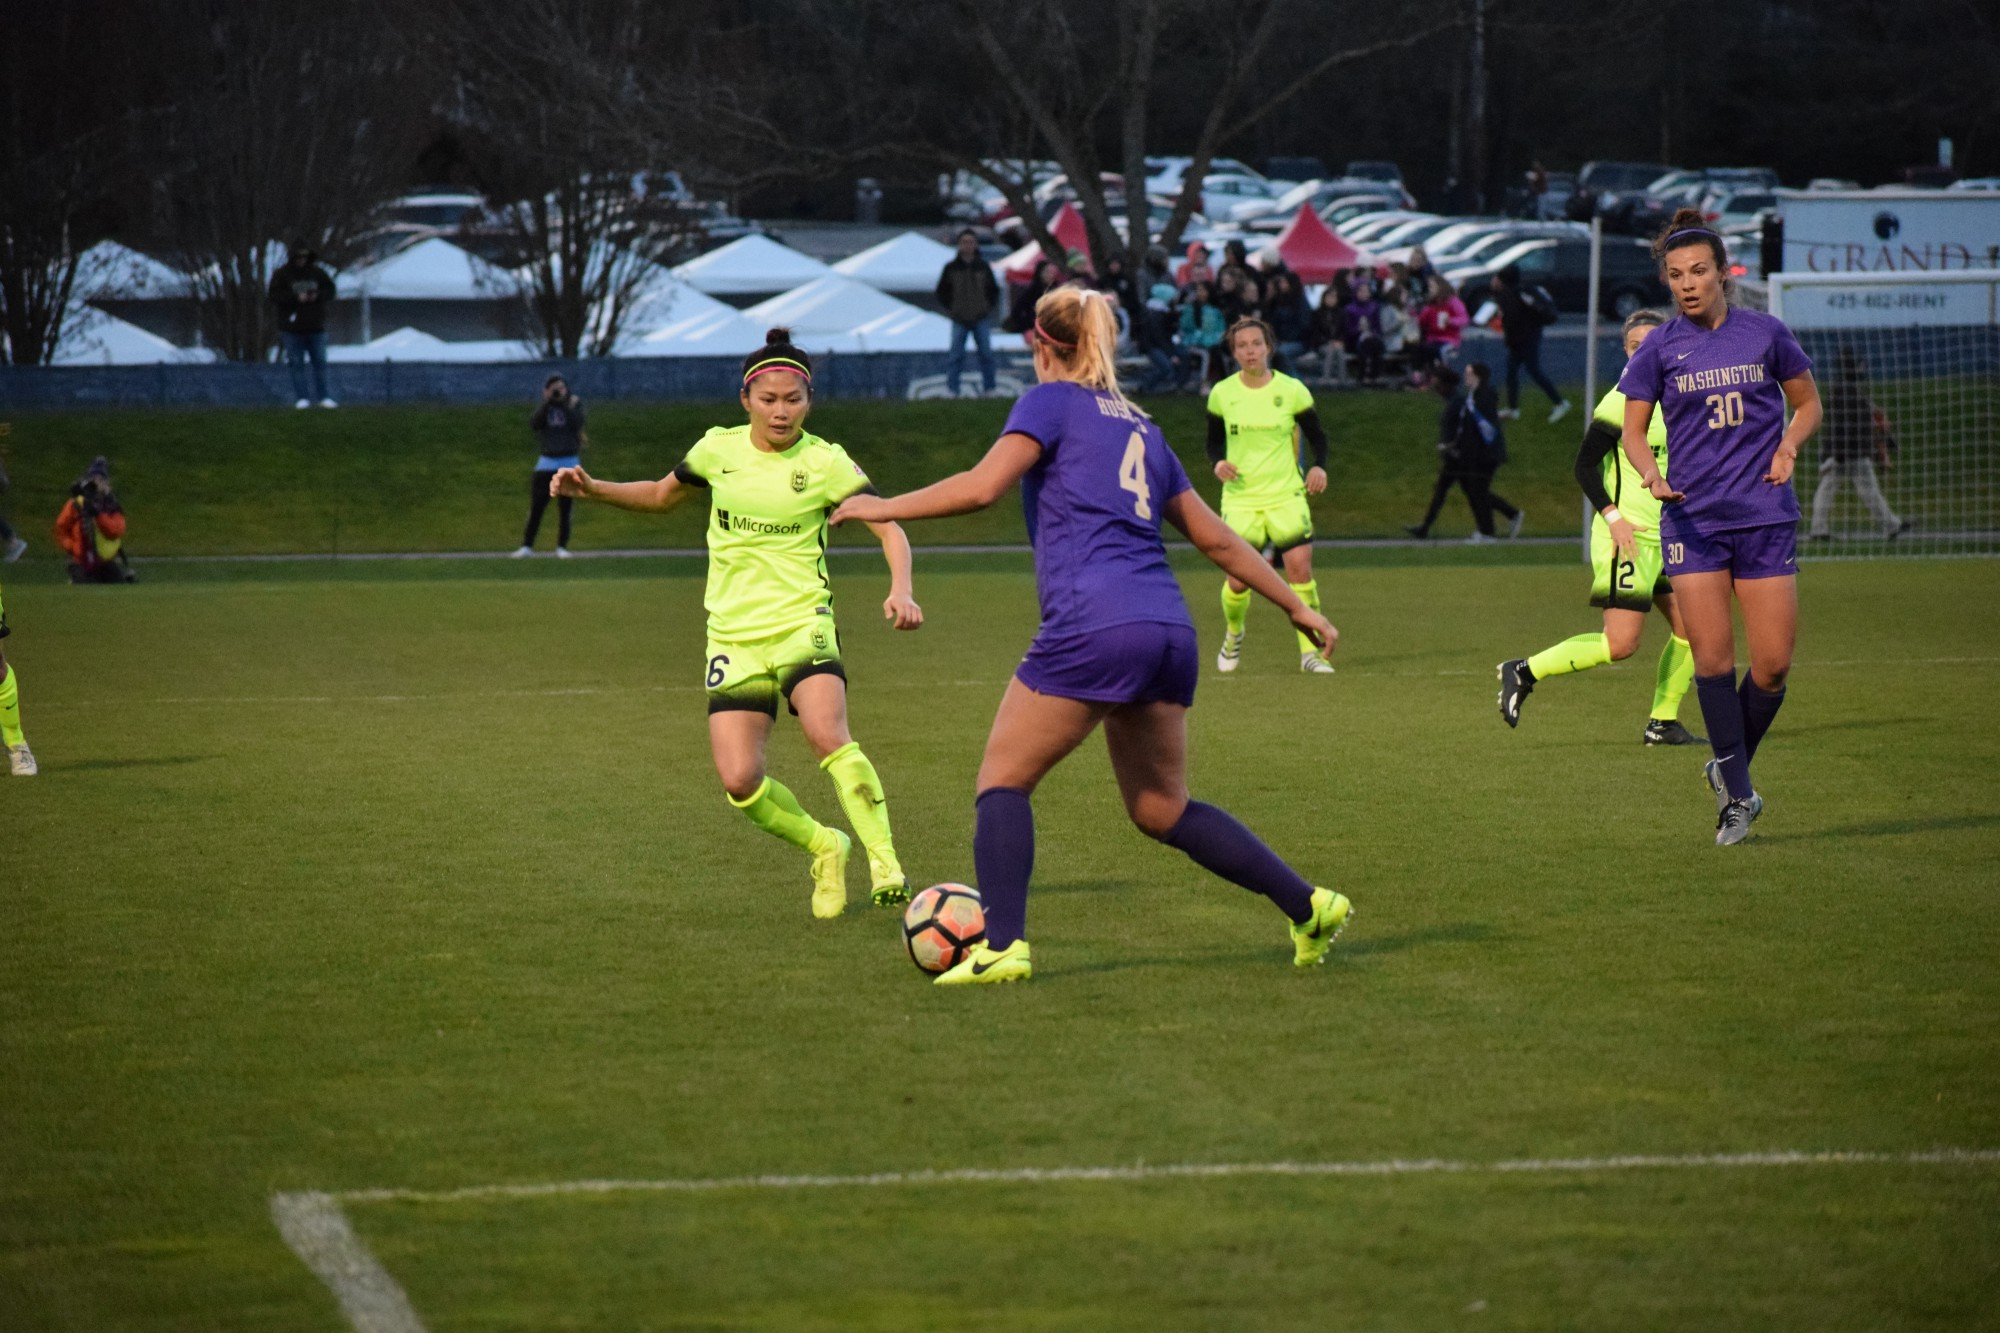 photo essay seattle reign fc 3 university of washington 0 photo essay seattle reign fc 3 university of washington 0 8 2017